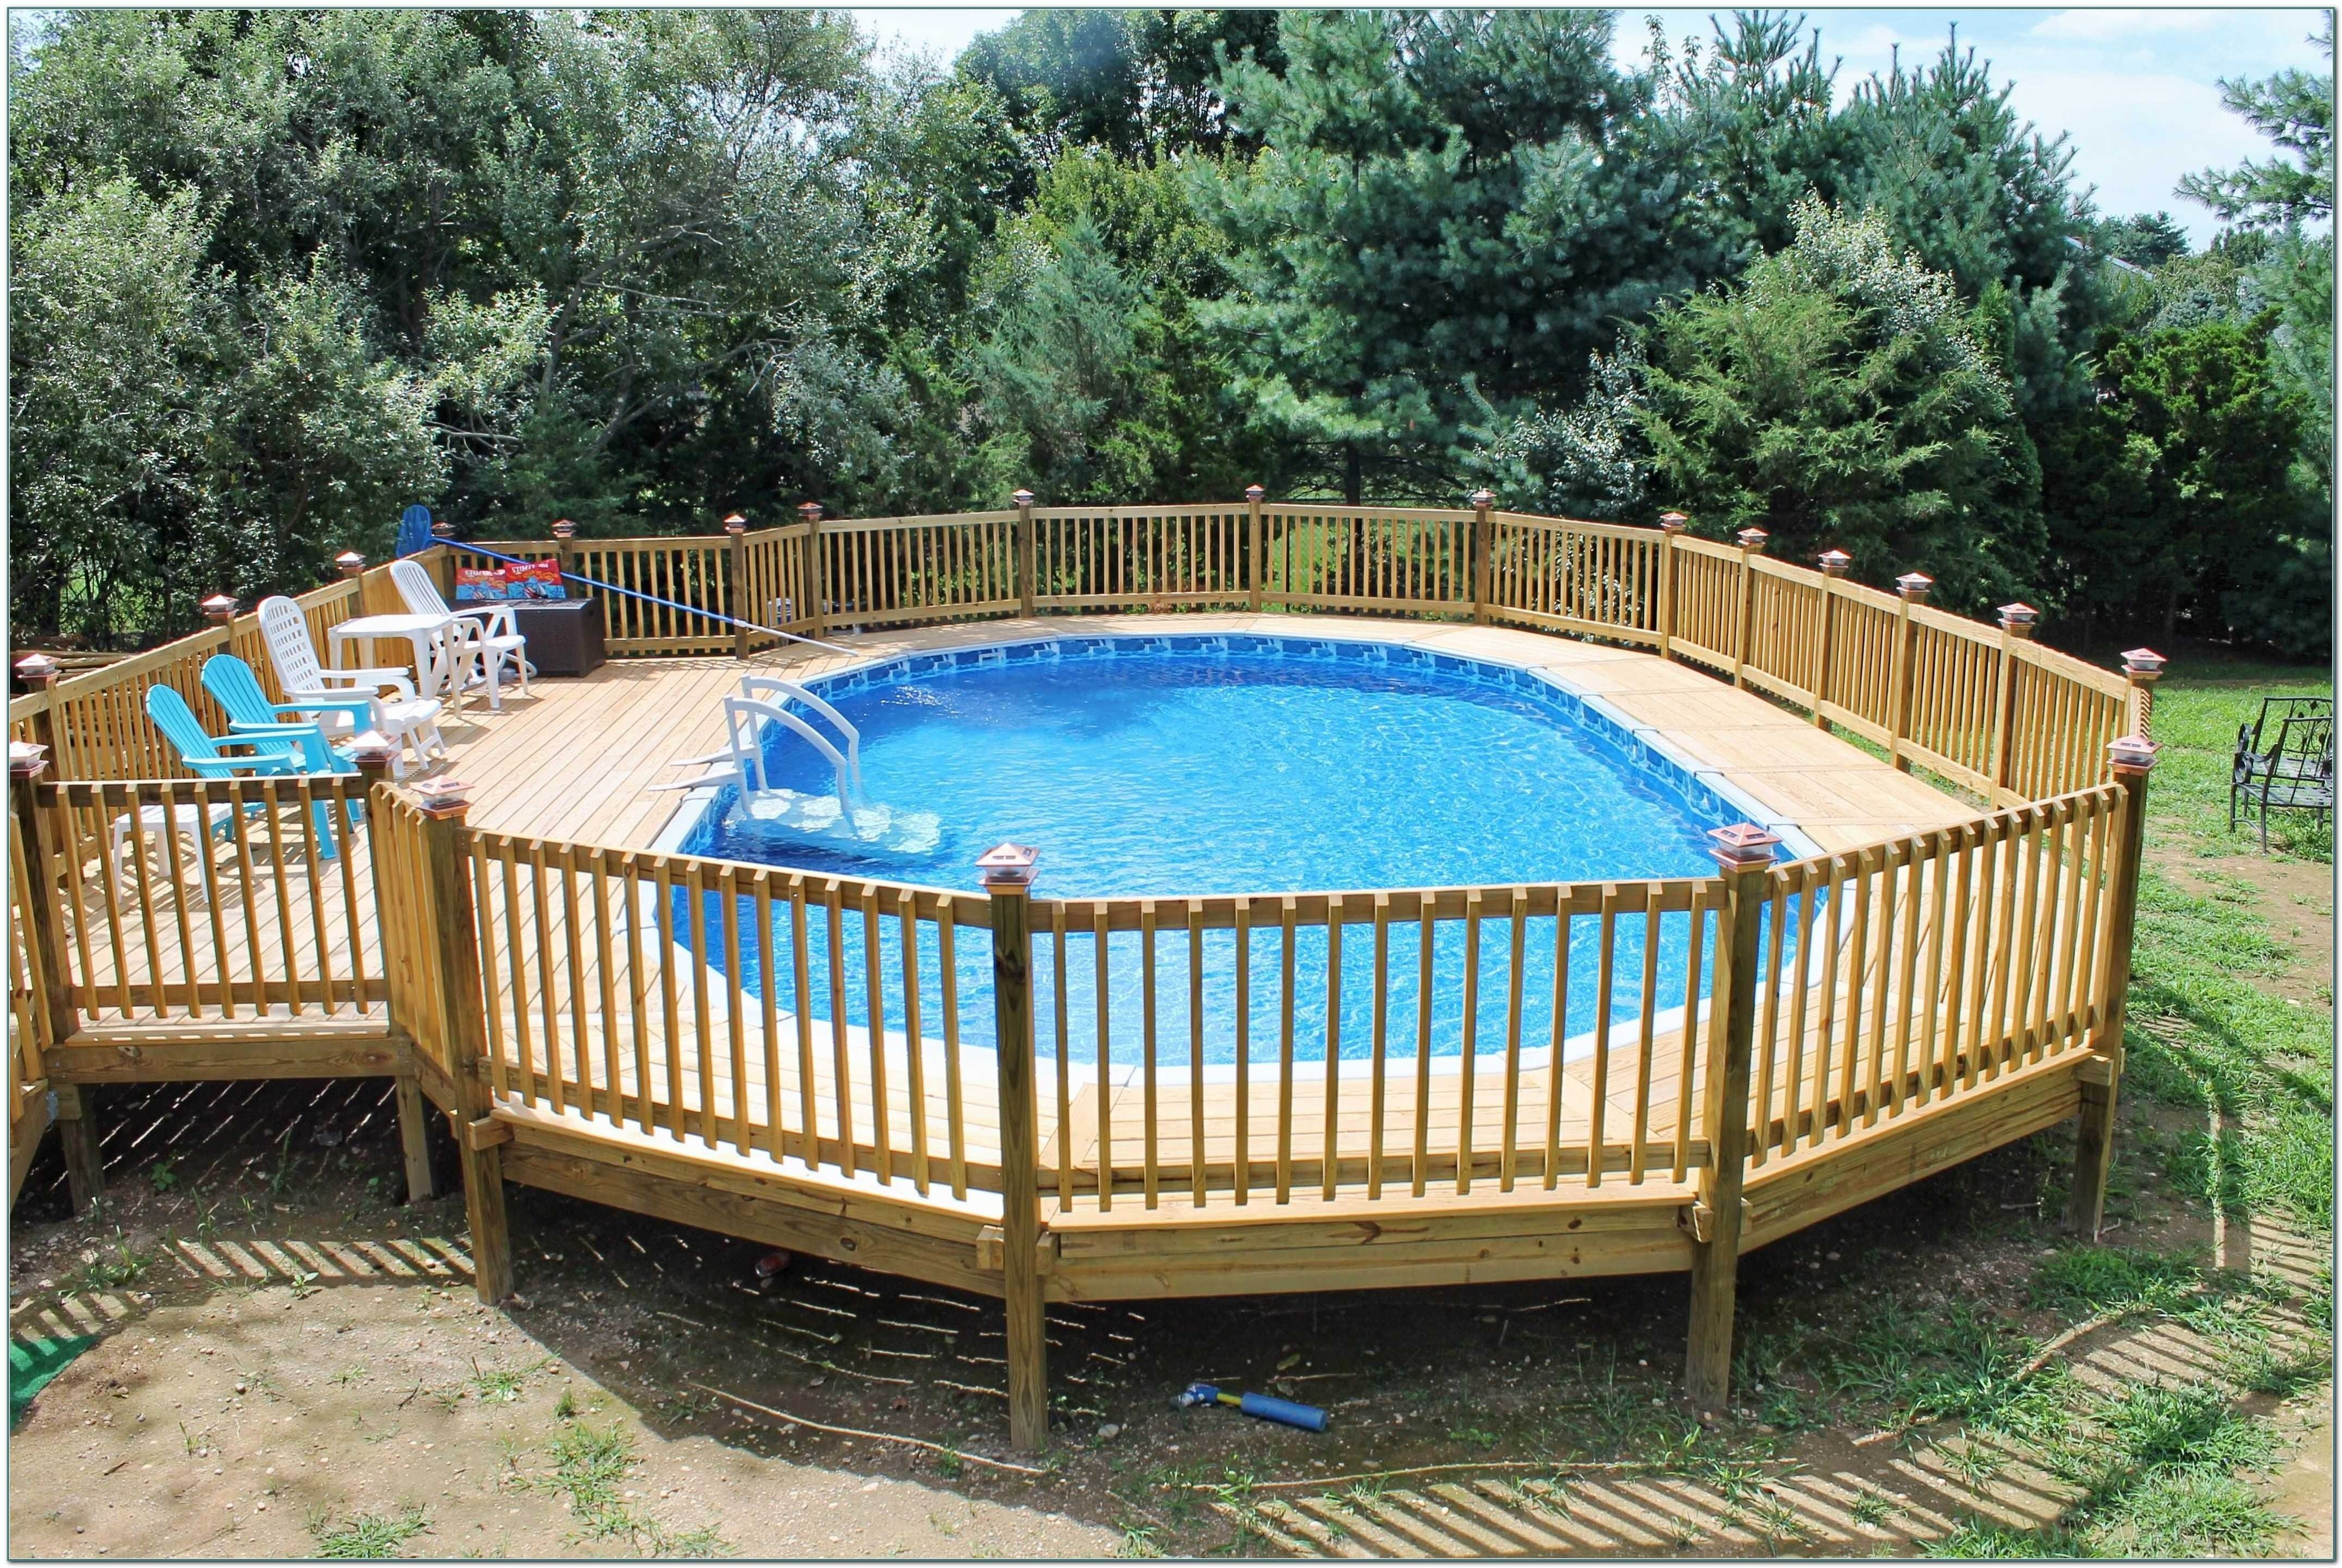 10 Trendy Deck Ideas For Above Ground Pools attractive oval above ground pool with deck decks ideas plans www 2021